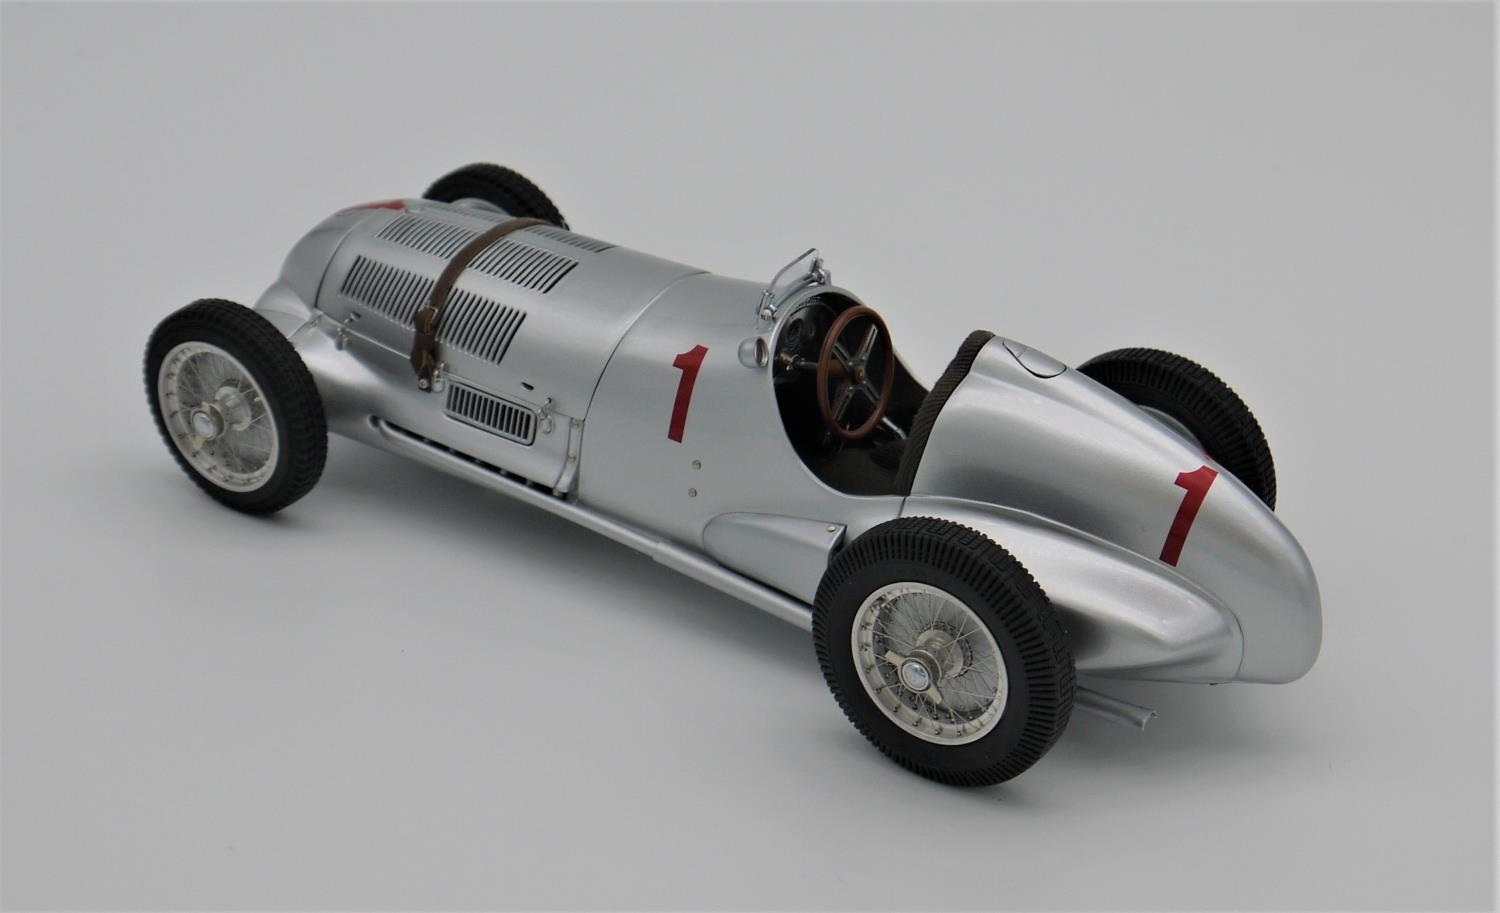 CMC MODELS 1:18 SCALE MODEL OF THE 1937 MERCEDES BENZ W125 NUMBER 1 GP DONINGTON ENTRANT ( - Image 2 of 2